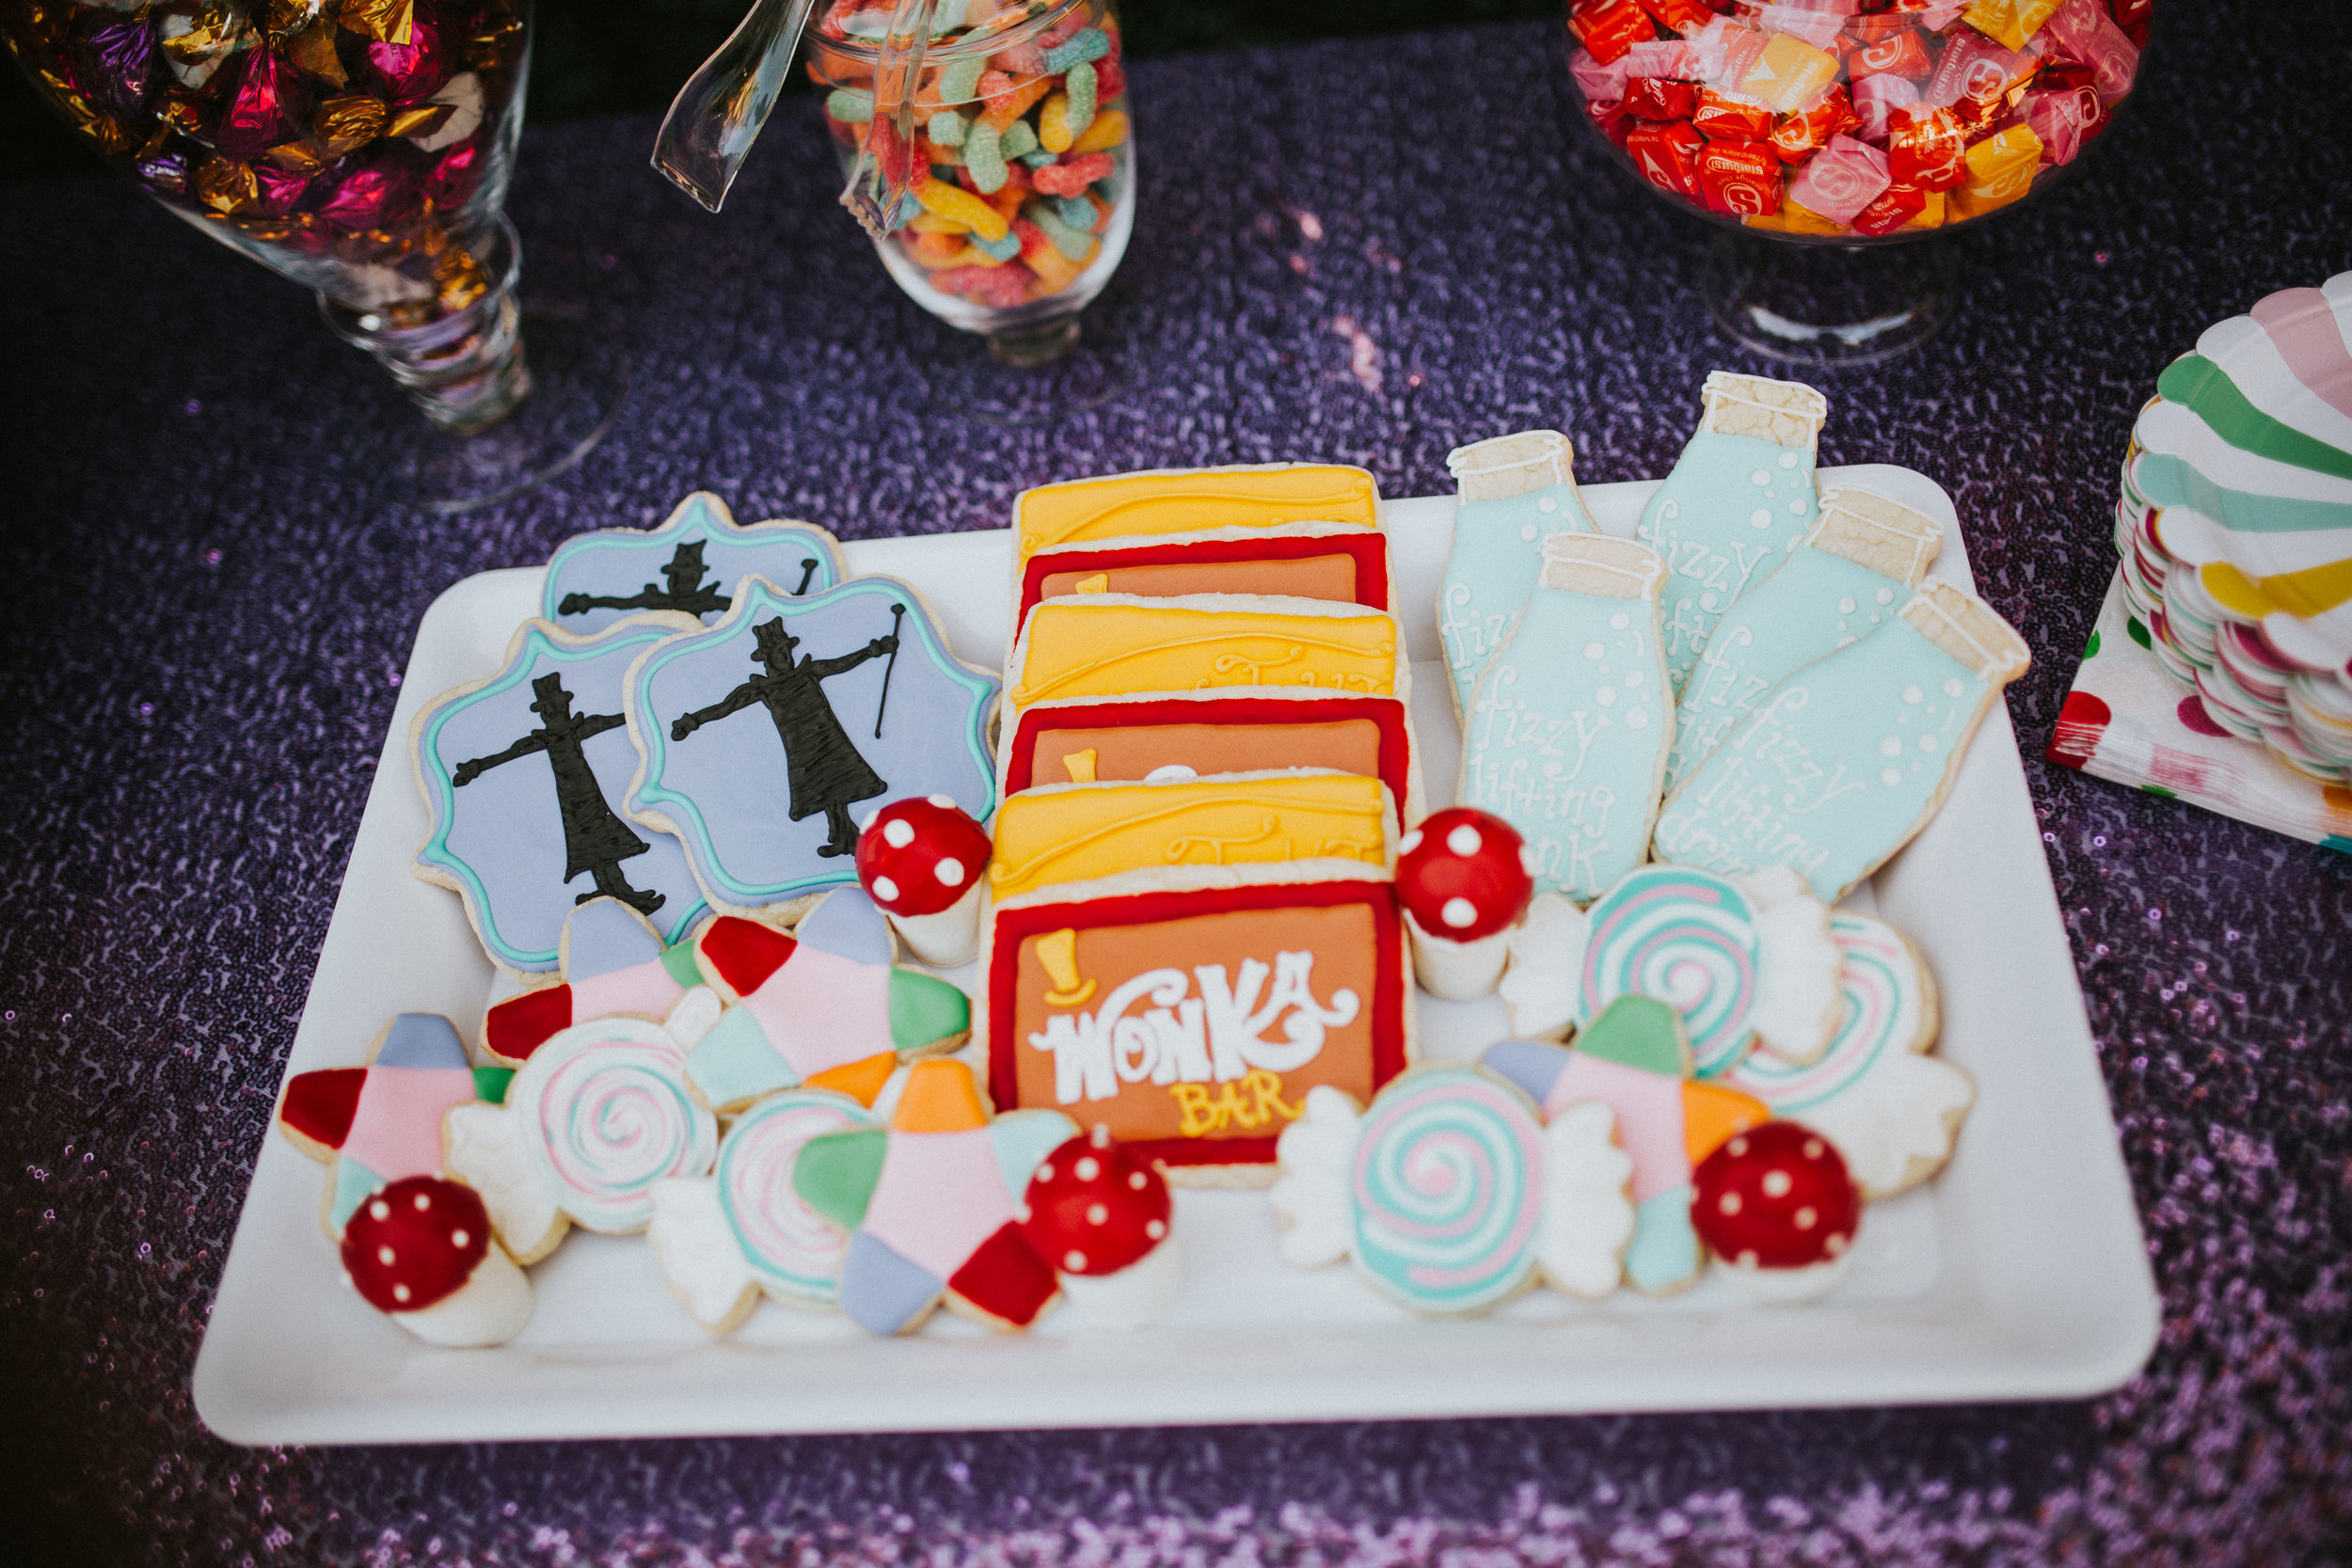 Willy Wonka Themed Birthday Party - Scarlet Plan & Design Atlanta Party Event Planners & Designers (49).jpg